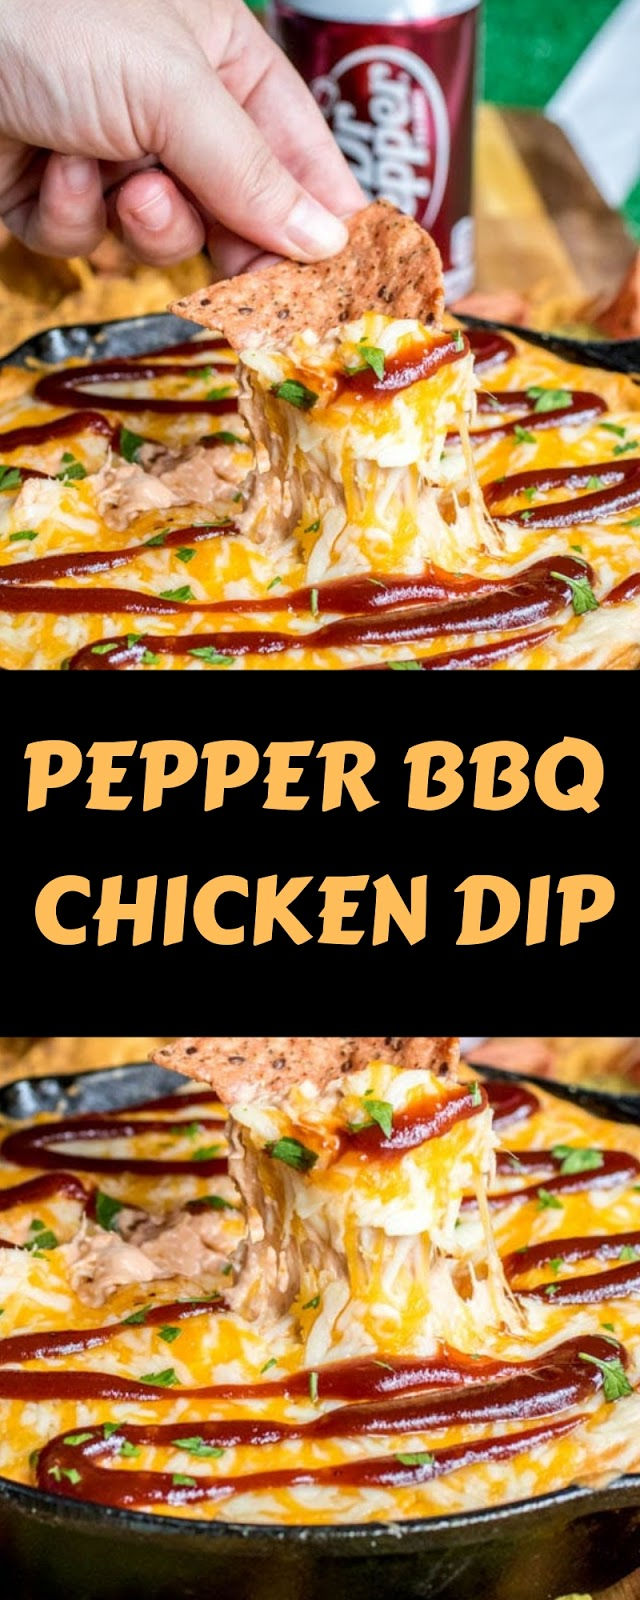 PEPPER BBQ CHICKEN DIP